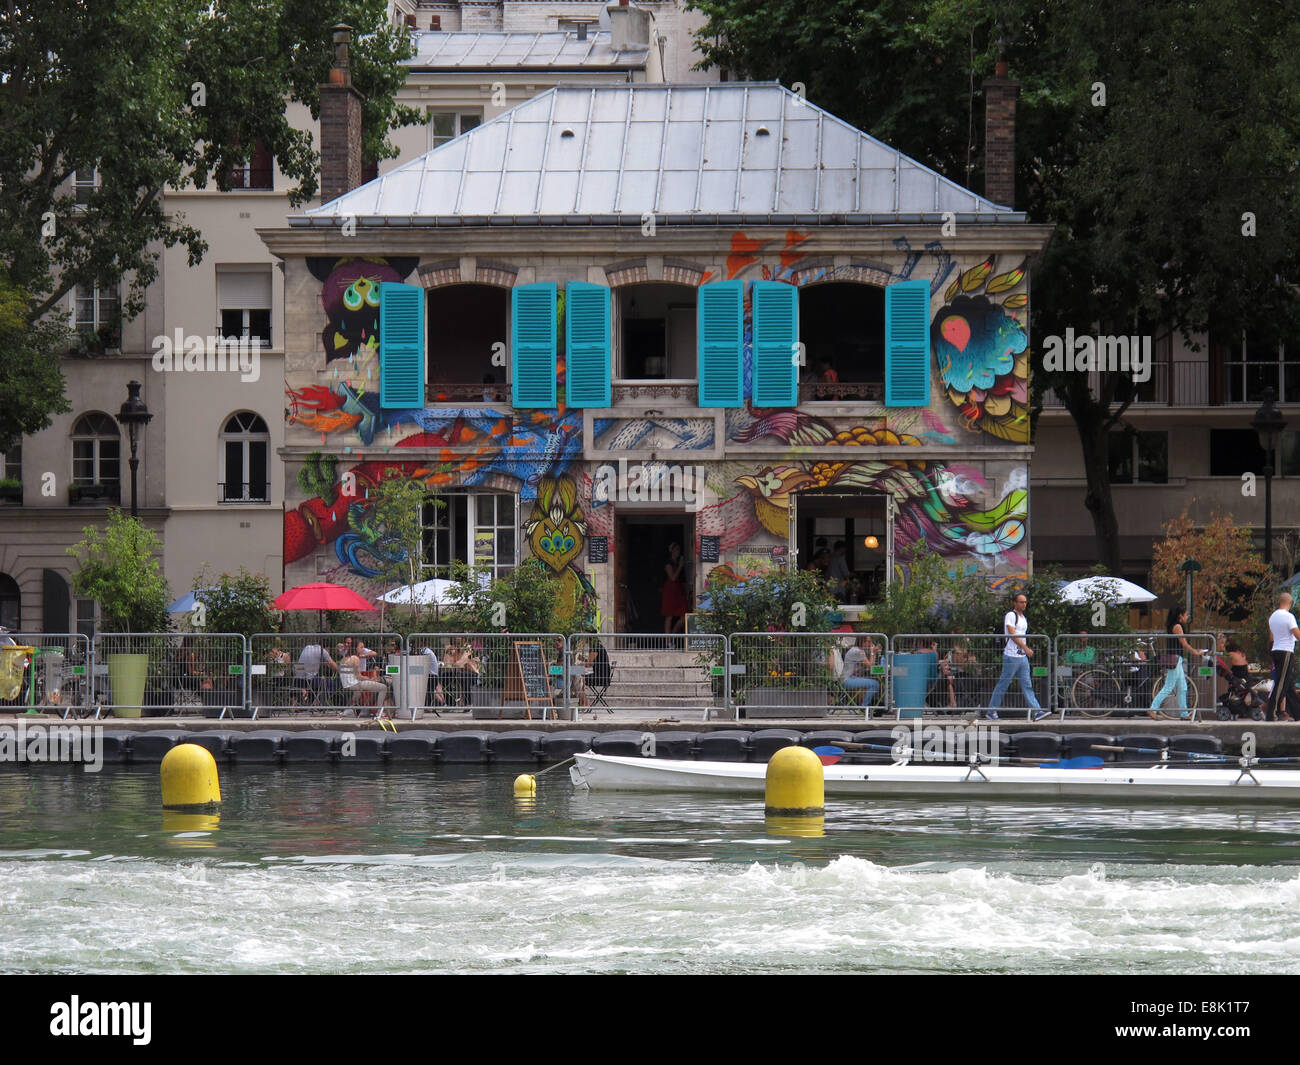 restaurant bassin de la villette canal saint martin paris france stock photo 74177271 alamy. Black Bedroom Furniture Sets. Home Design Ideas